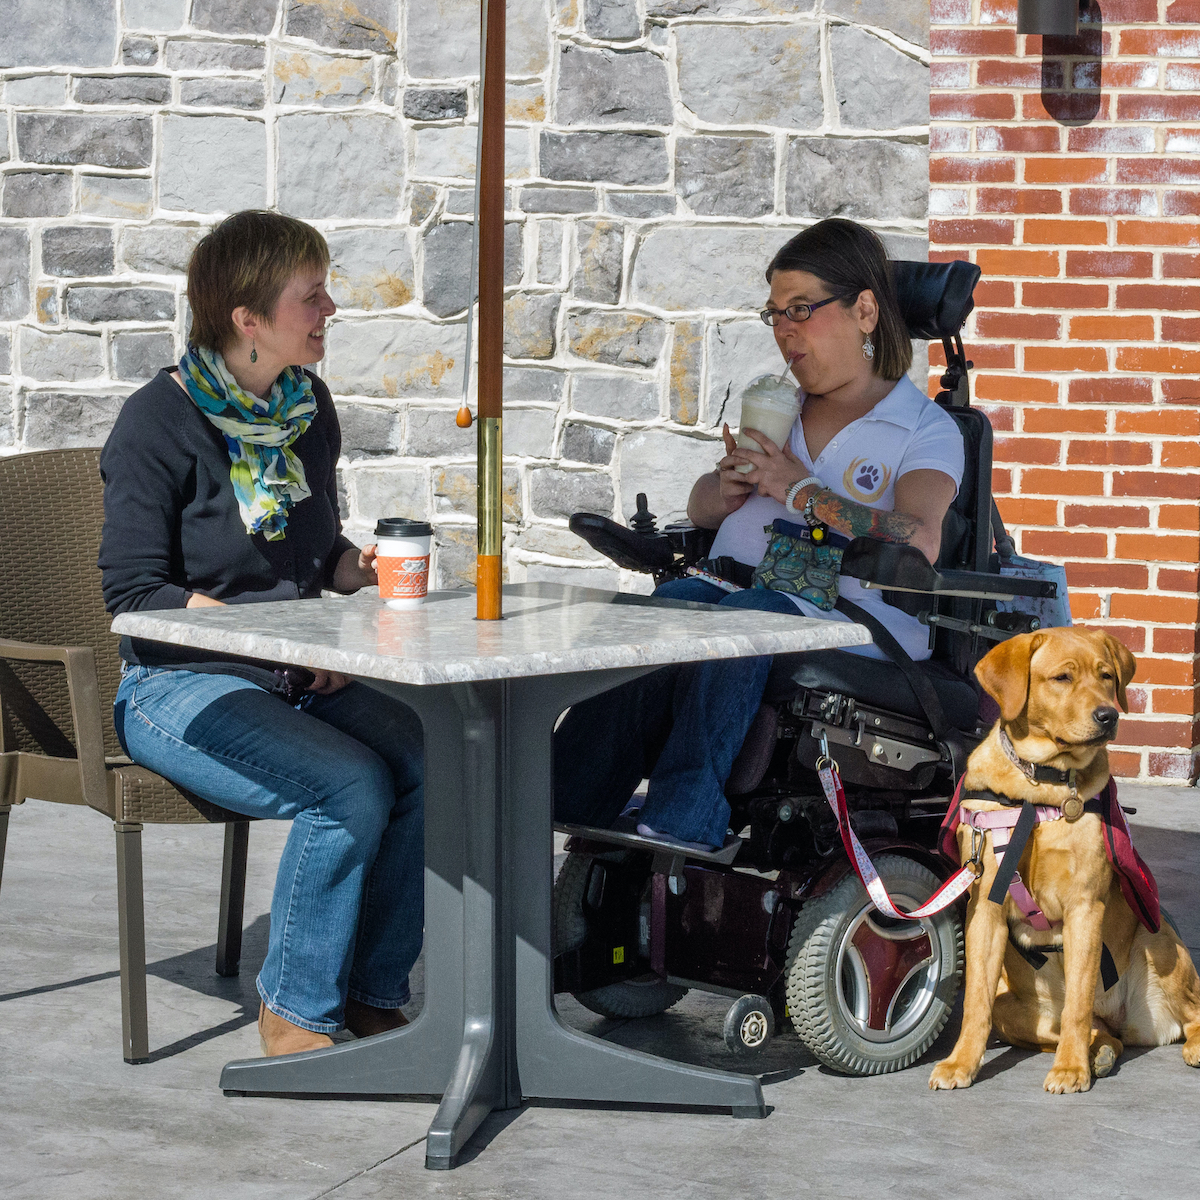 Two women sit outside at a cafe drinking coffee. One woman uses a power wheelchair and has her service dog next to her.